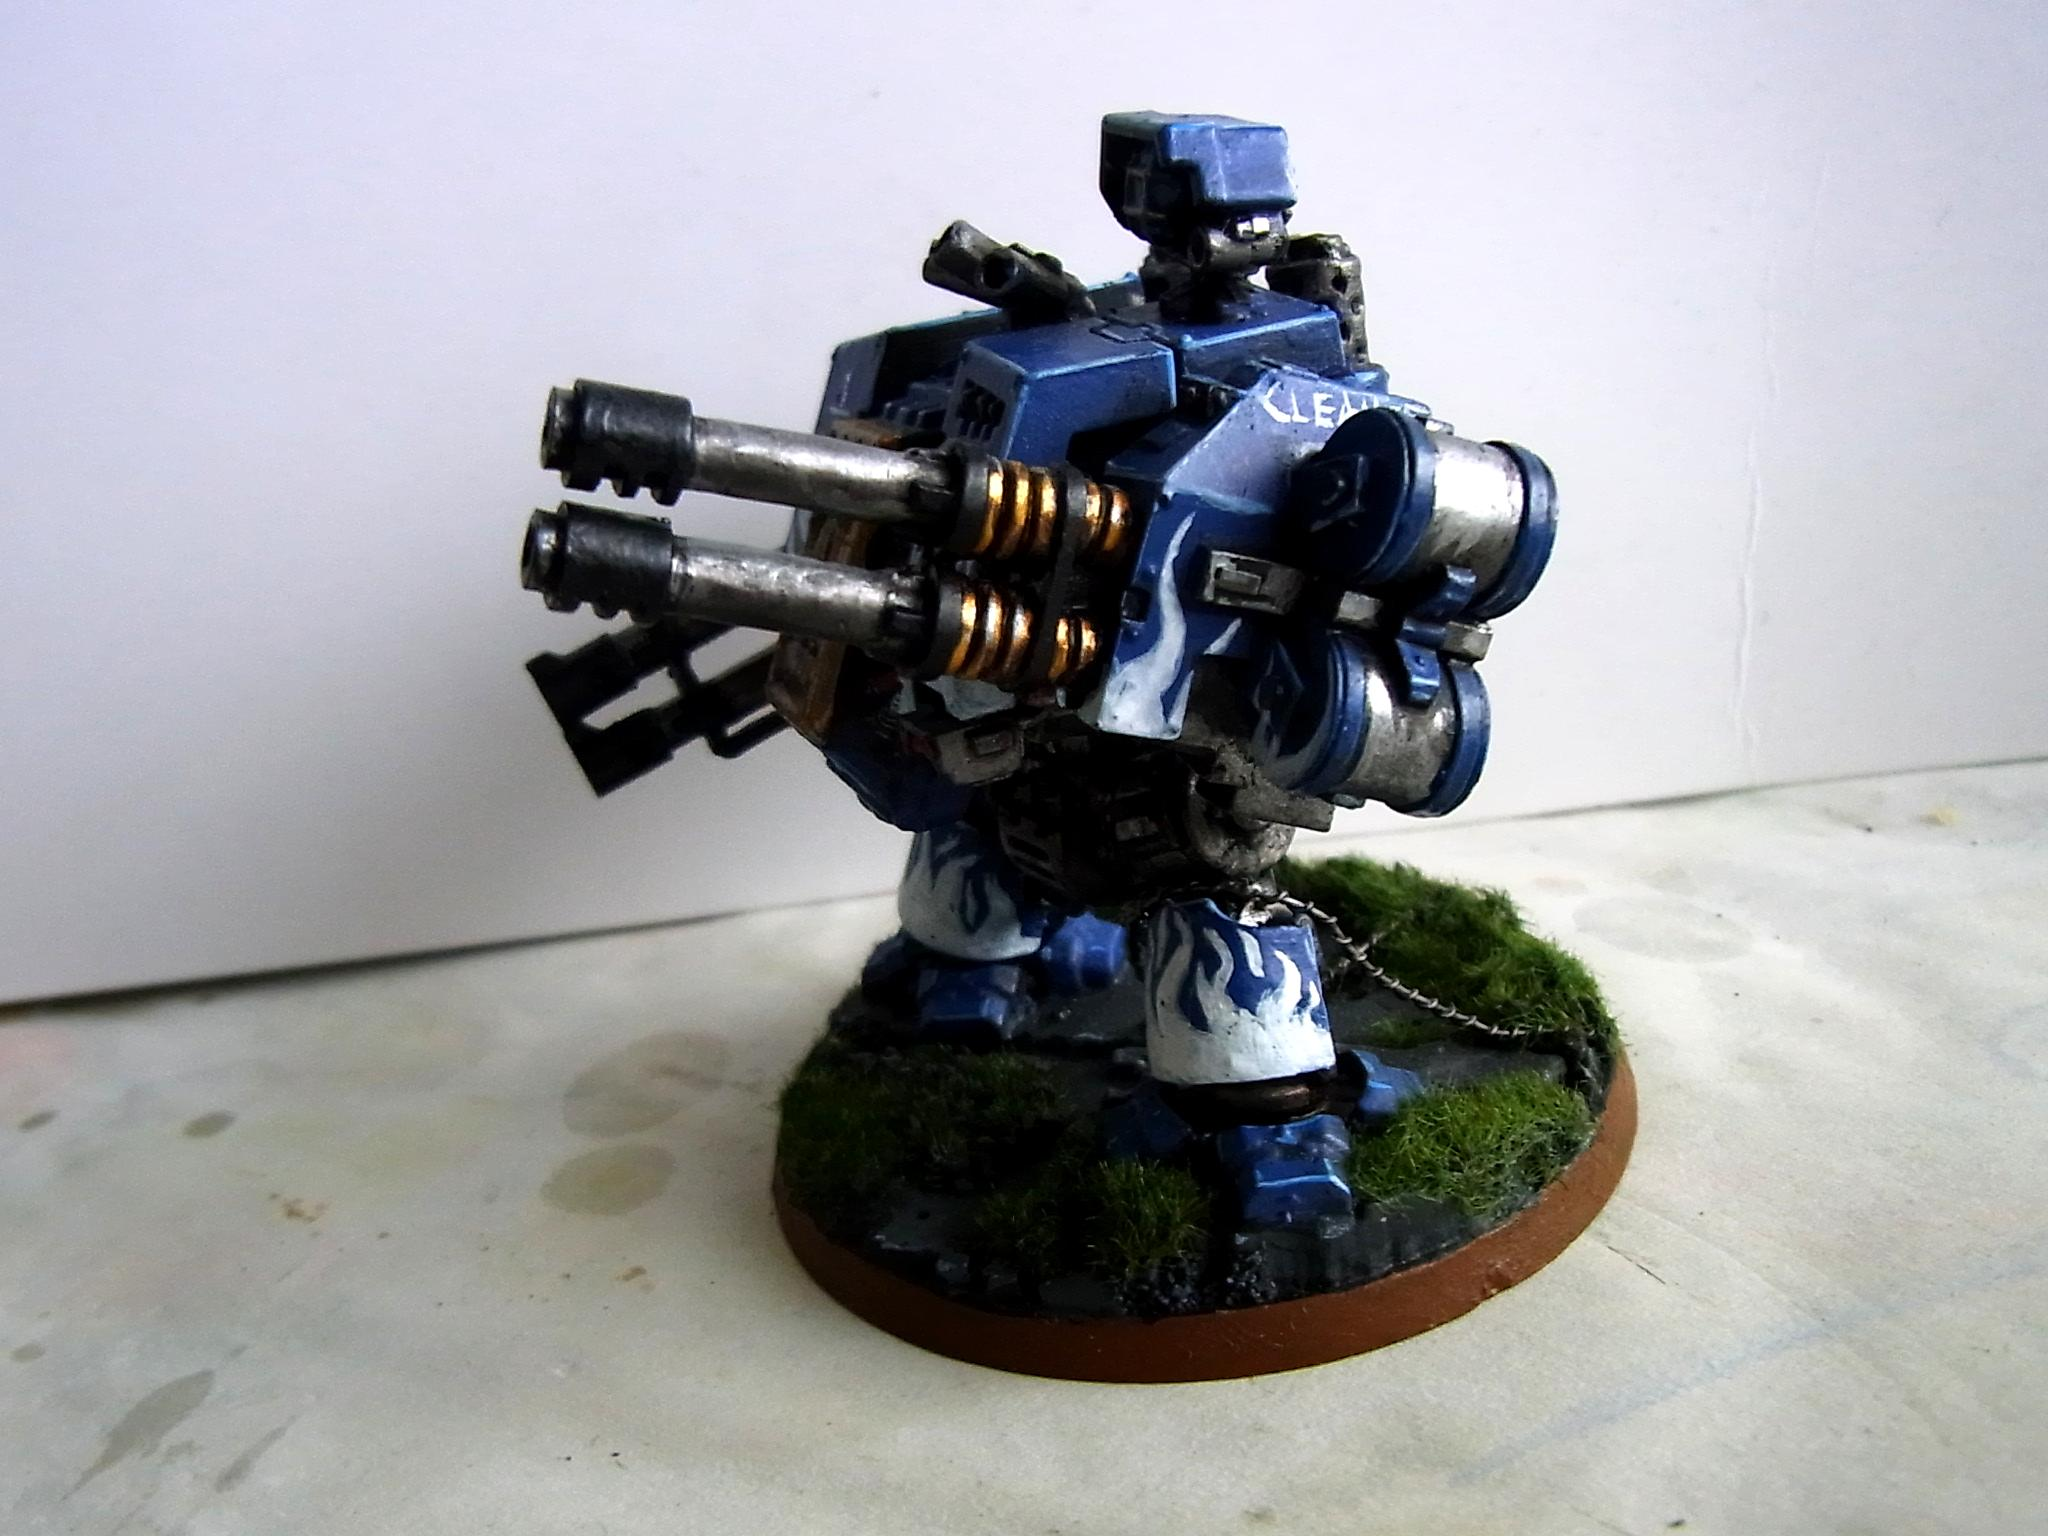 Autocannon, Dreadnought, Rifleman, Space Marines, White Swords